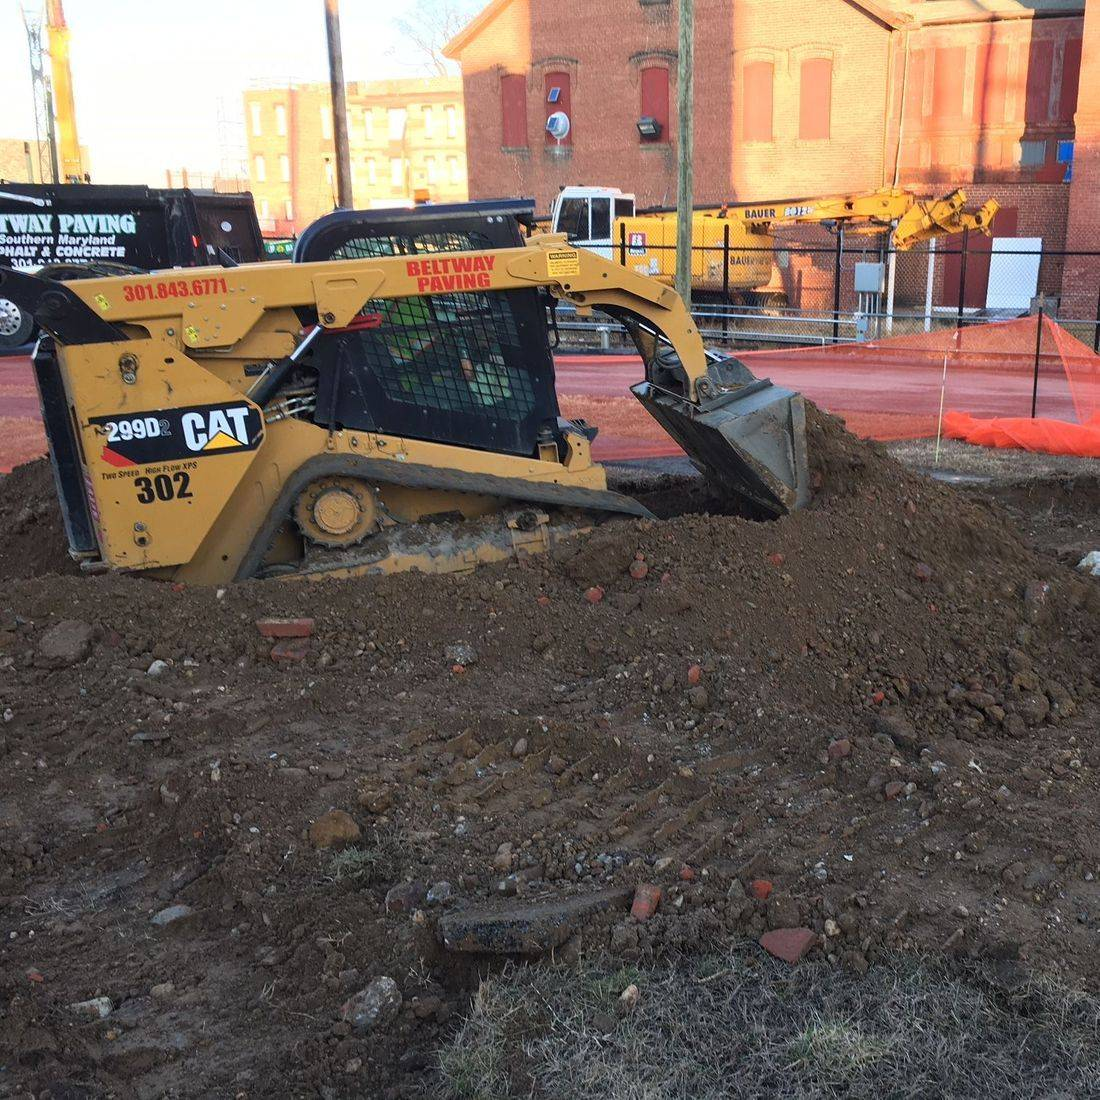 Excavation work at St. Elizabeths Campus in Washington, D.C.